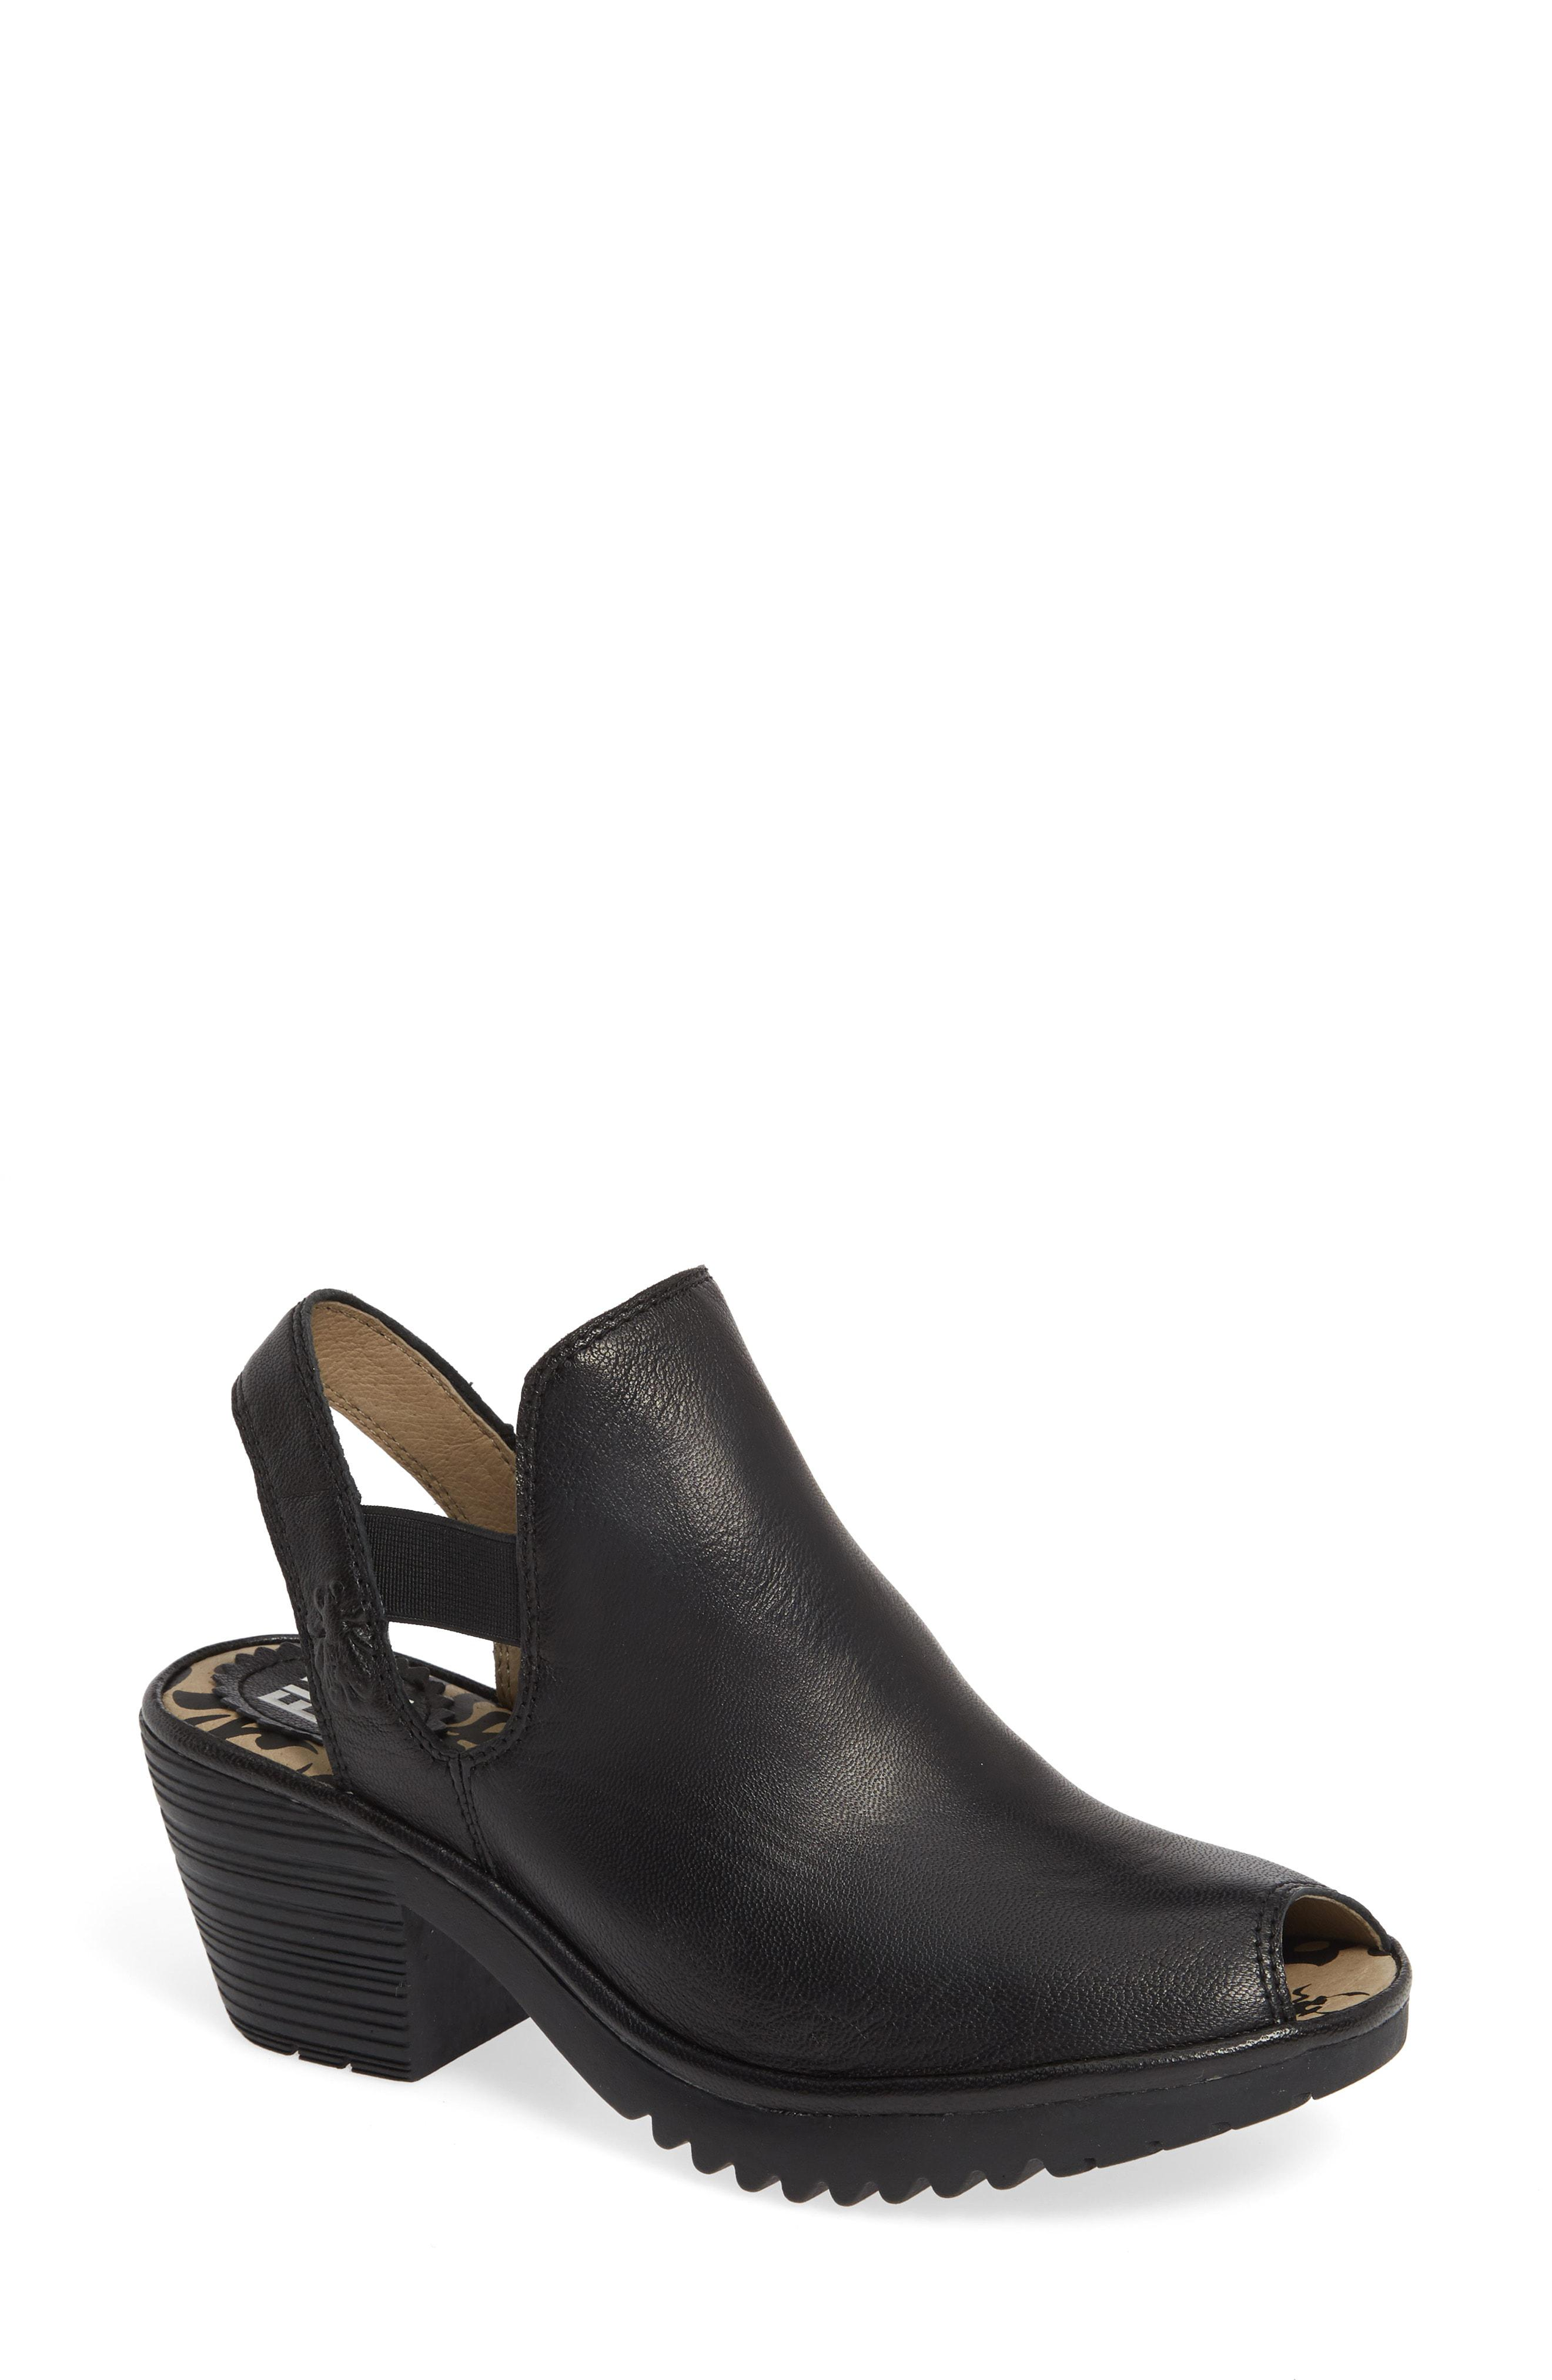 Lyst - Fly London Wari Slingback Bootie in Black f0c82b742fd8